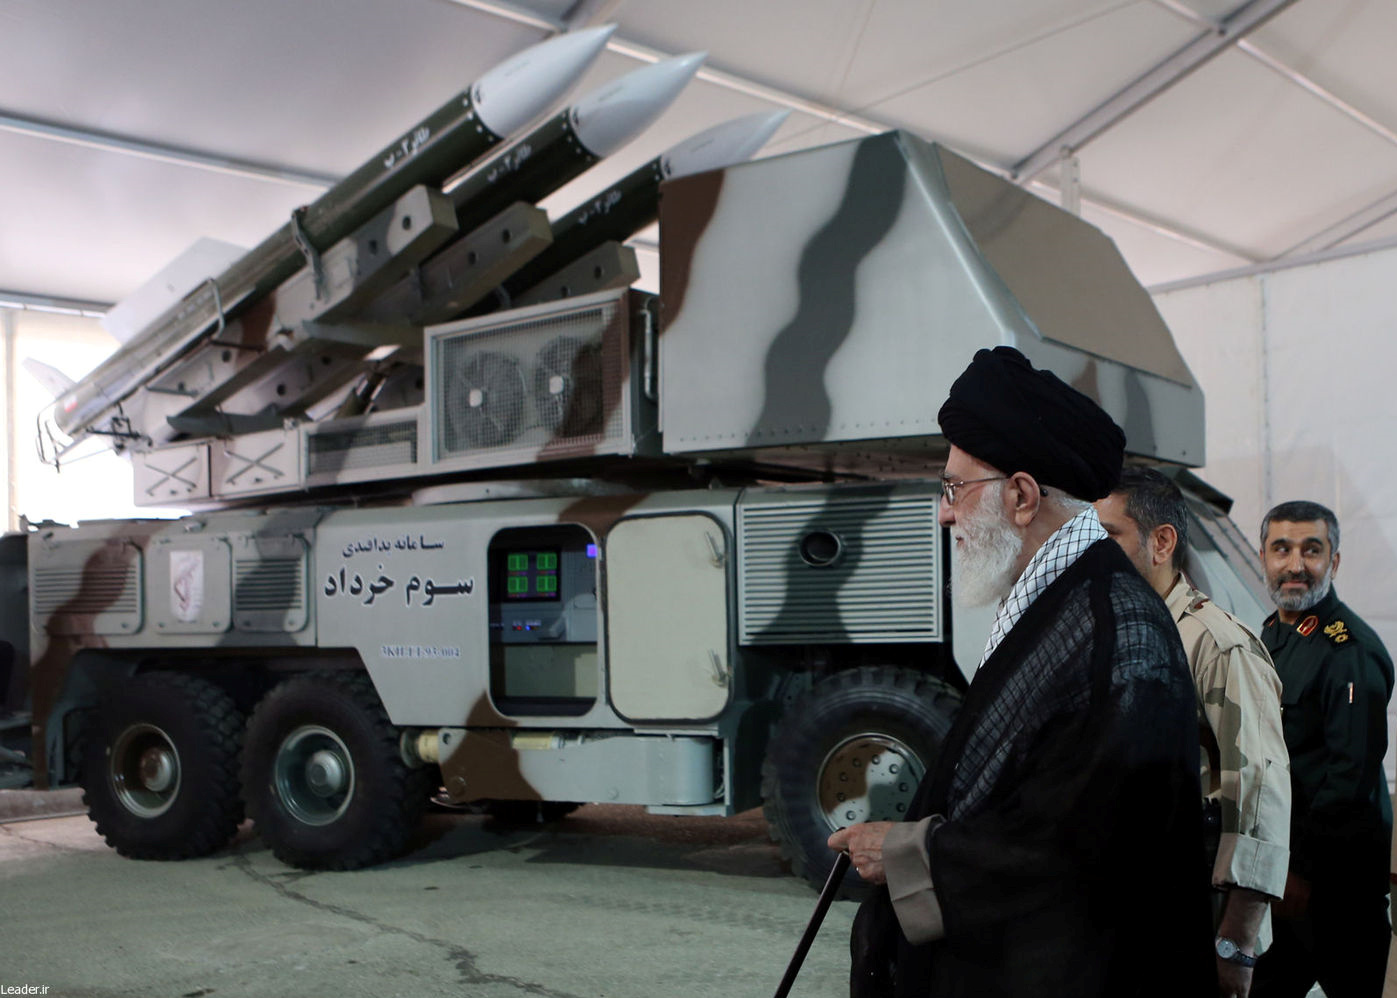 "Iran's Supreme Leader Ayatollah Ali Khamenei is seen near a ""3 Khordad"" system which is said to had been used to shoot down a U.S. military drone, according to news agency Fars, in this undated handout picture. Fars news/Handout via REUTERS ATTENTION EDITORS - THIS IMAGE WAS PROVIDED BY A THIRD PARTY. NO RESALES. NO ARCHIVES. REUTERS IS UNABLE TO INDEPENDENTLY VERIFY THIS IMAGE."